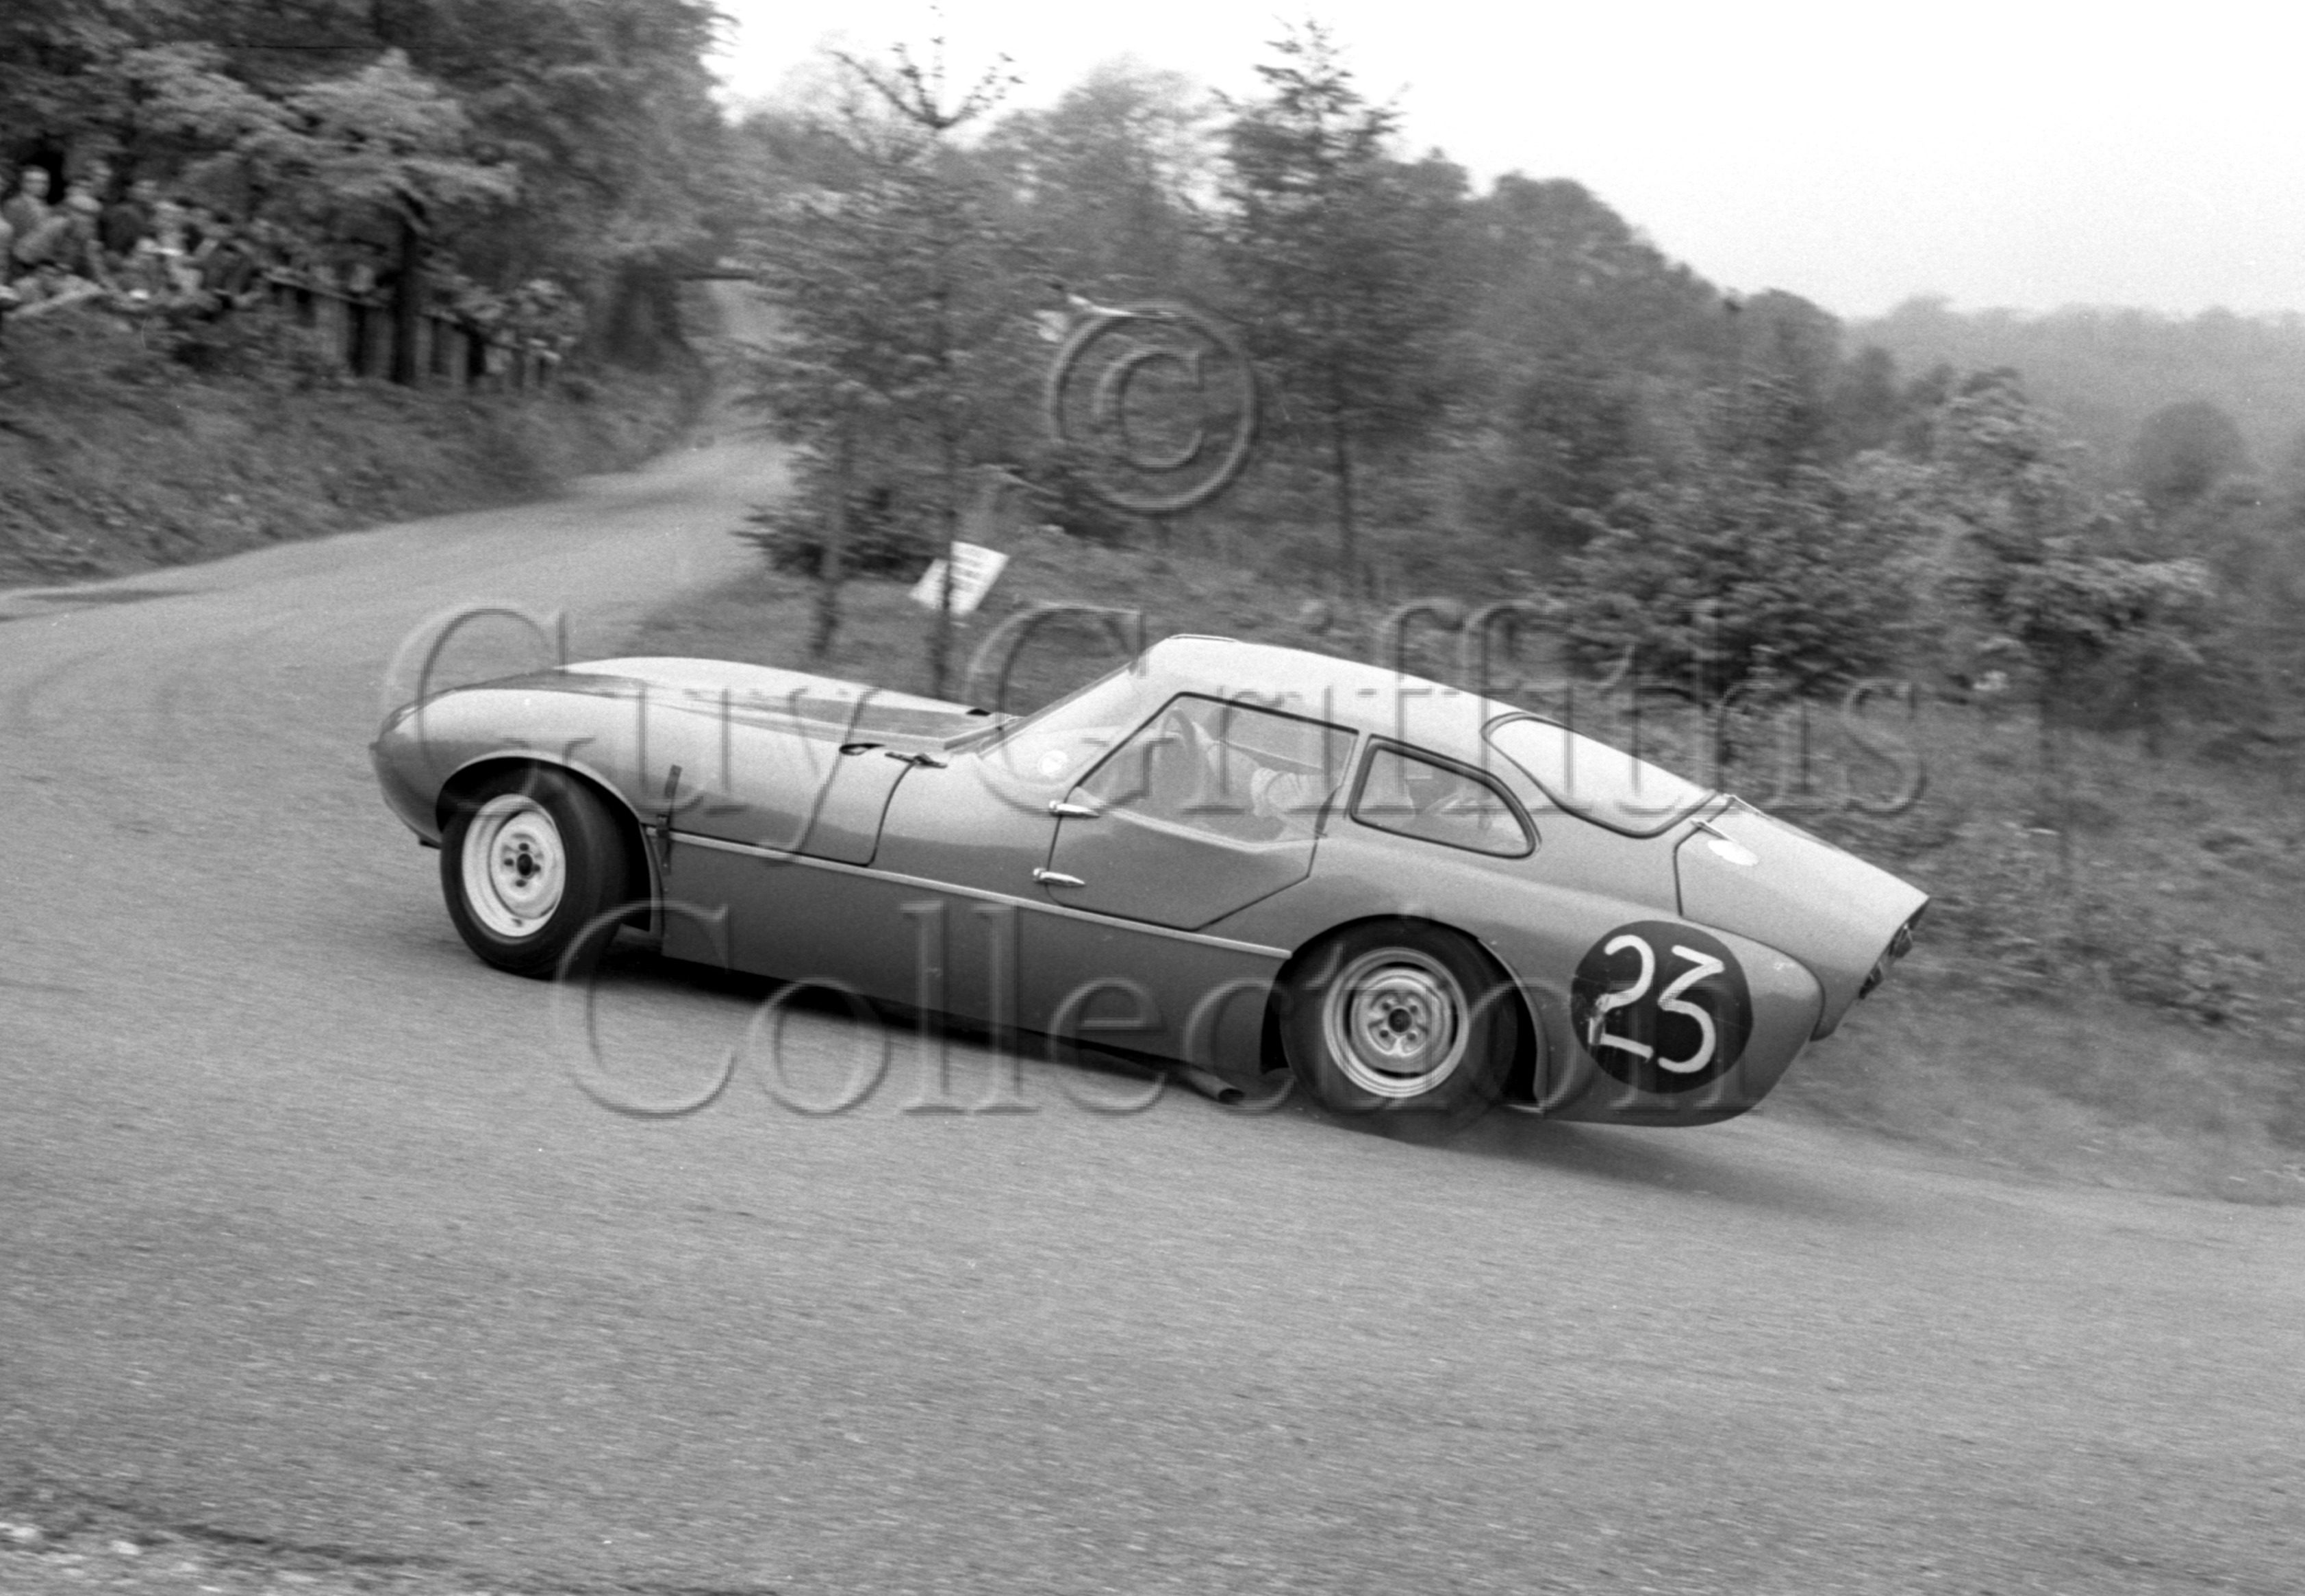 90-634–A-Cook–Marcos—Wiscombe-Park–16-05-1965.jpg - The Guy Griffiths Collection